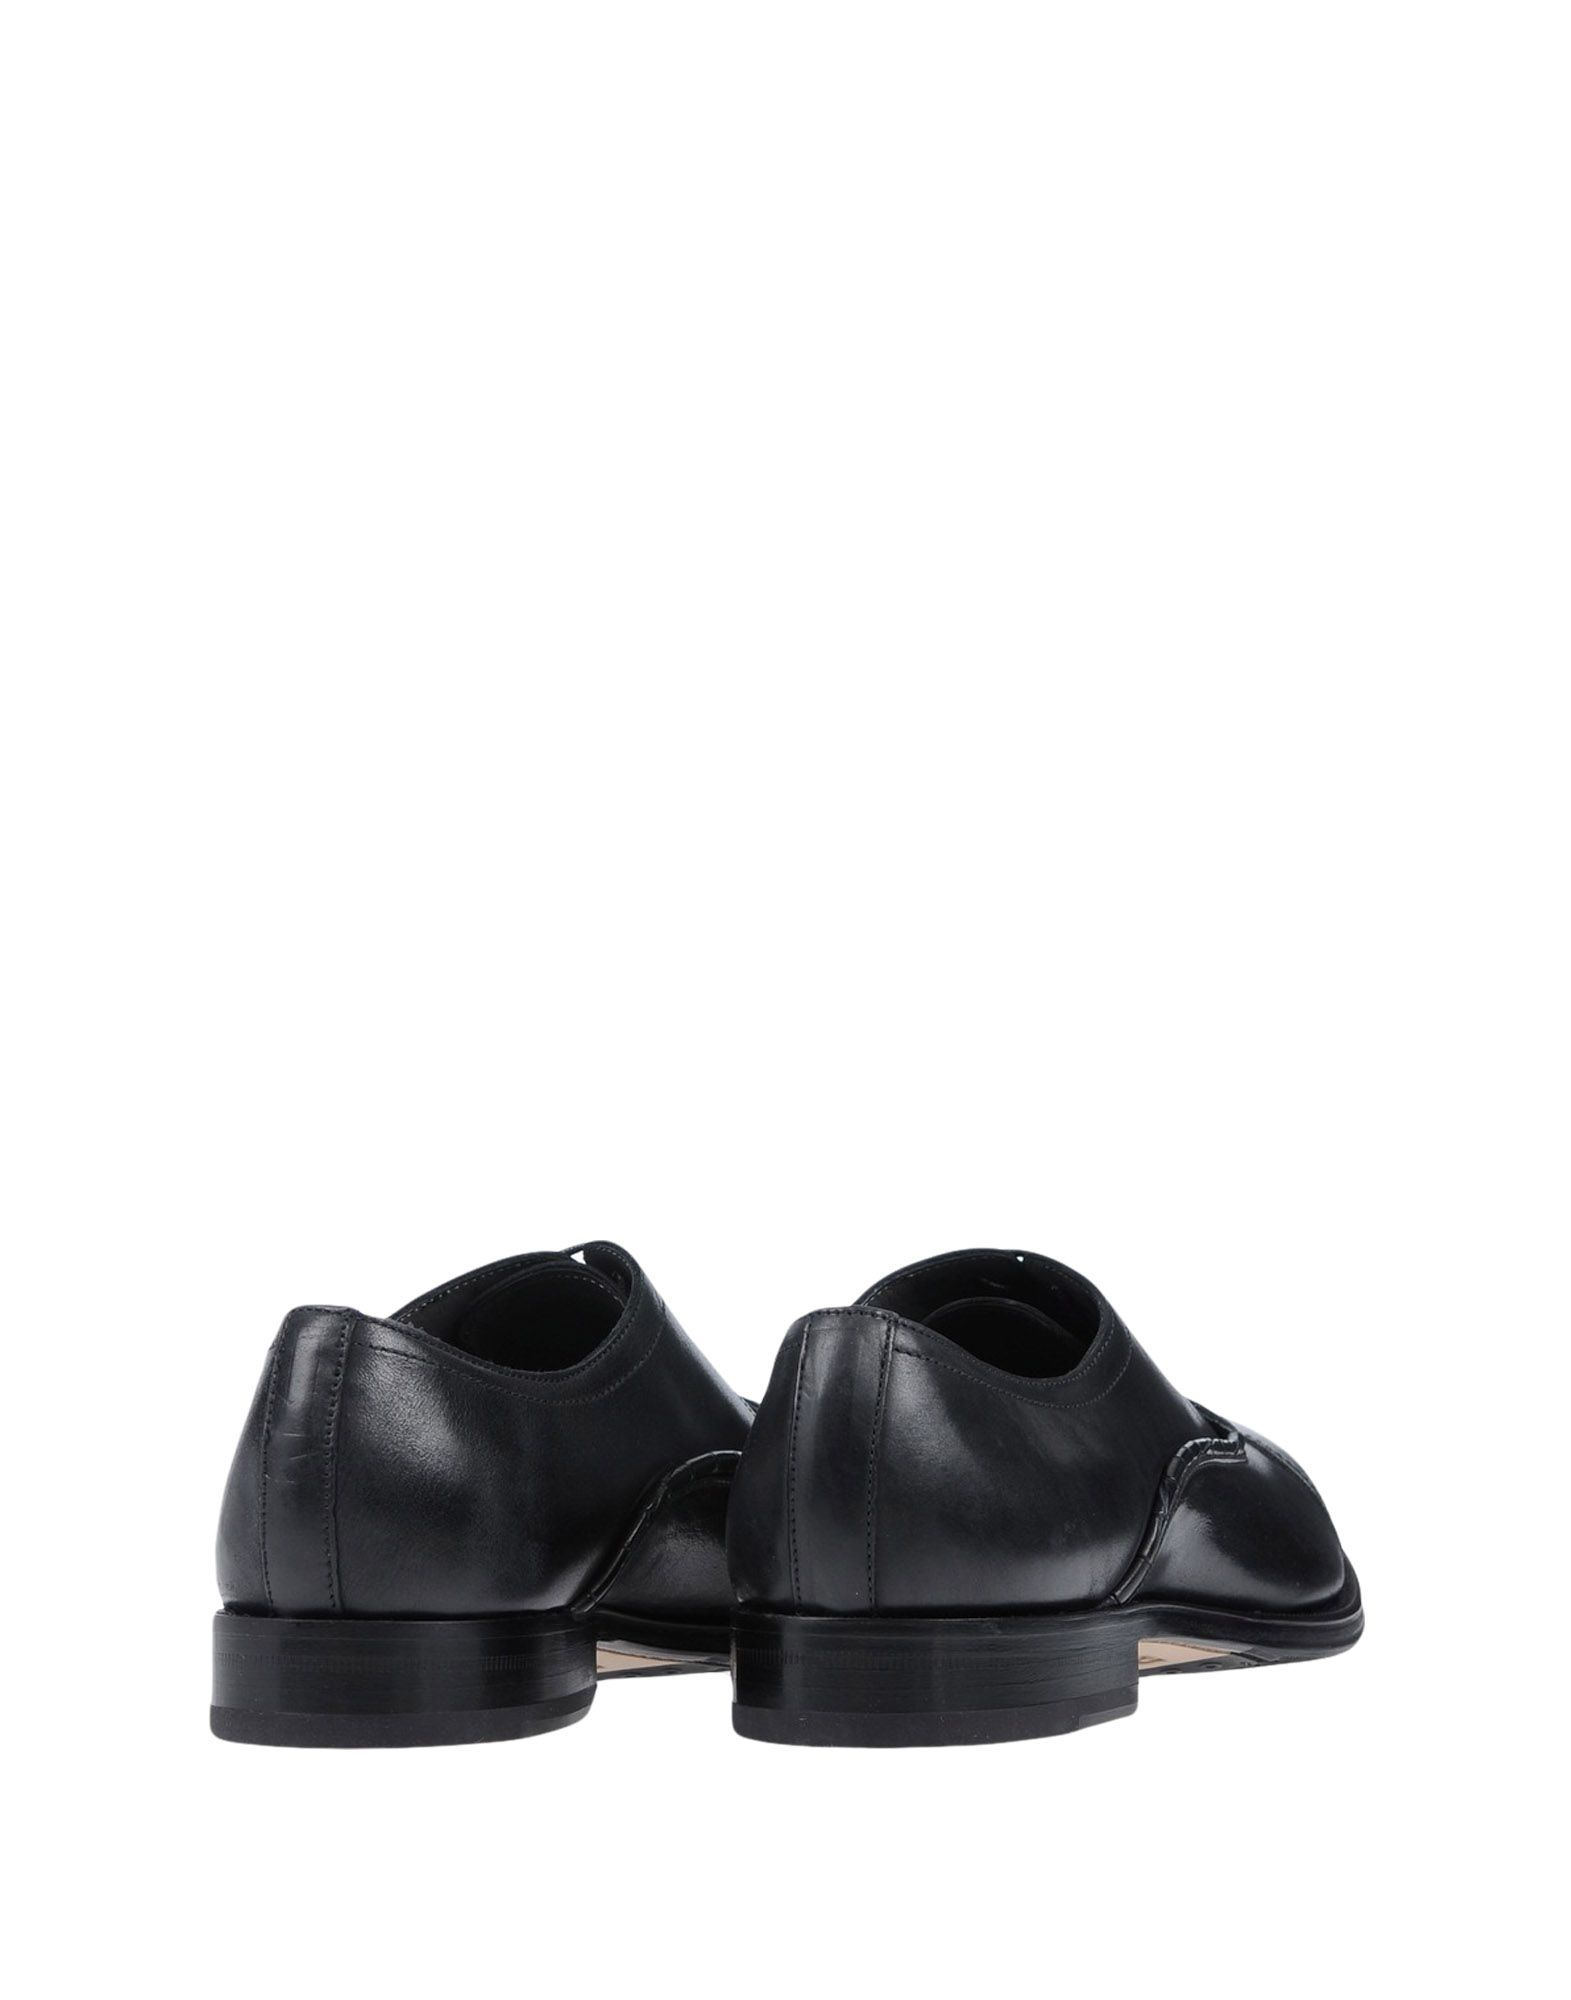 Pollini Black Calf Leather Lace Up Shoes